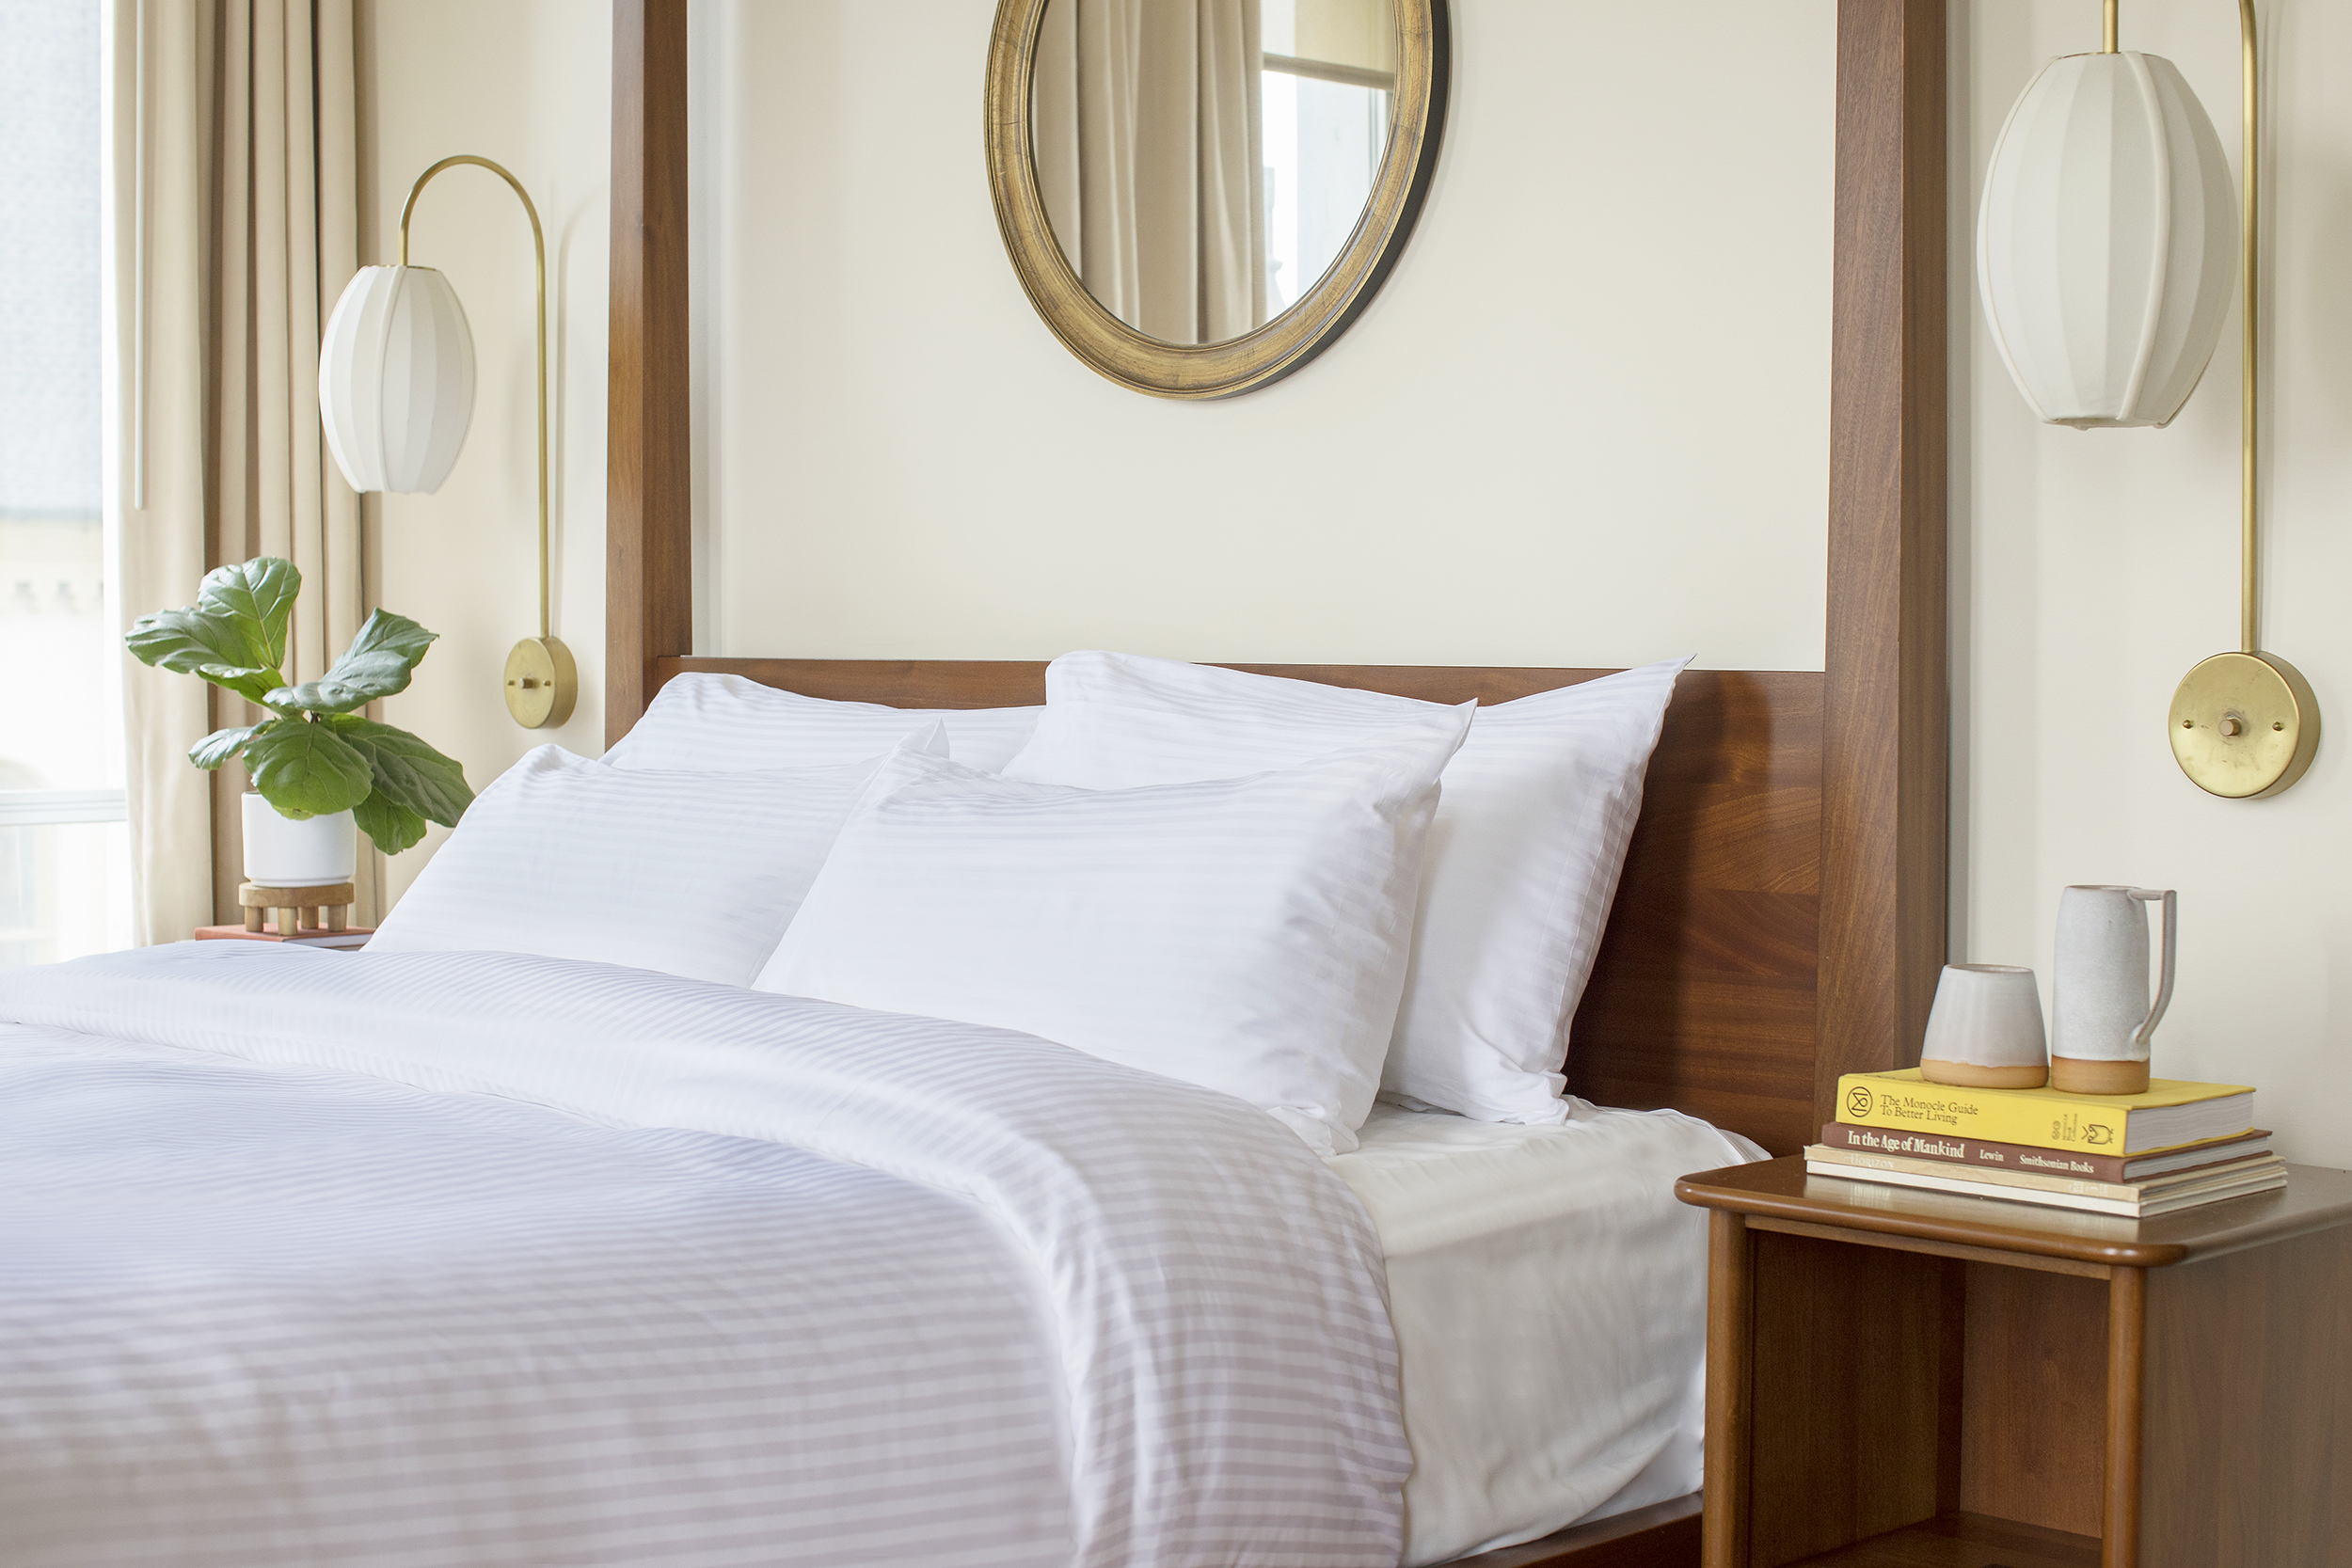 A 300-thread-count sheet, like Riegel Linen's, is a good pick for midscale hotels and higher.